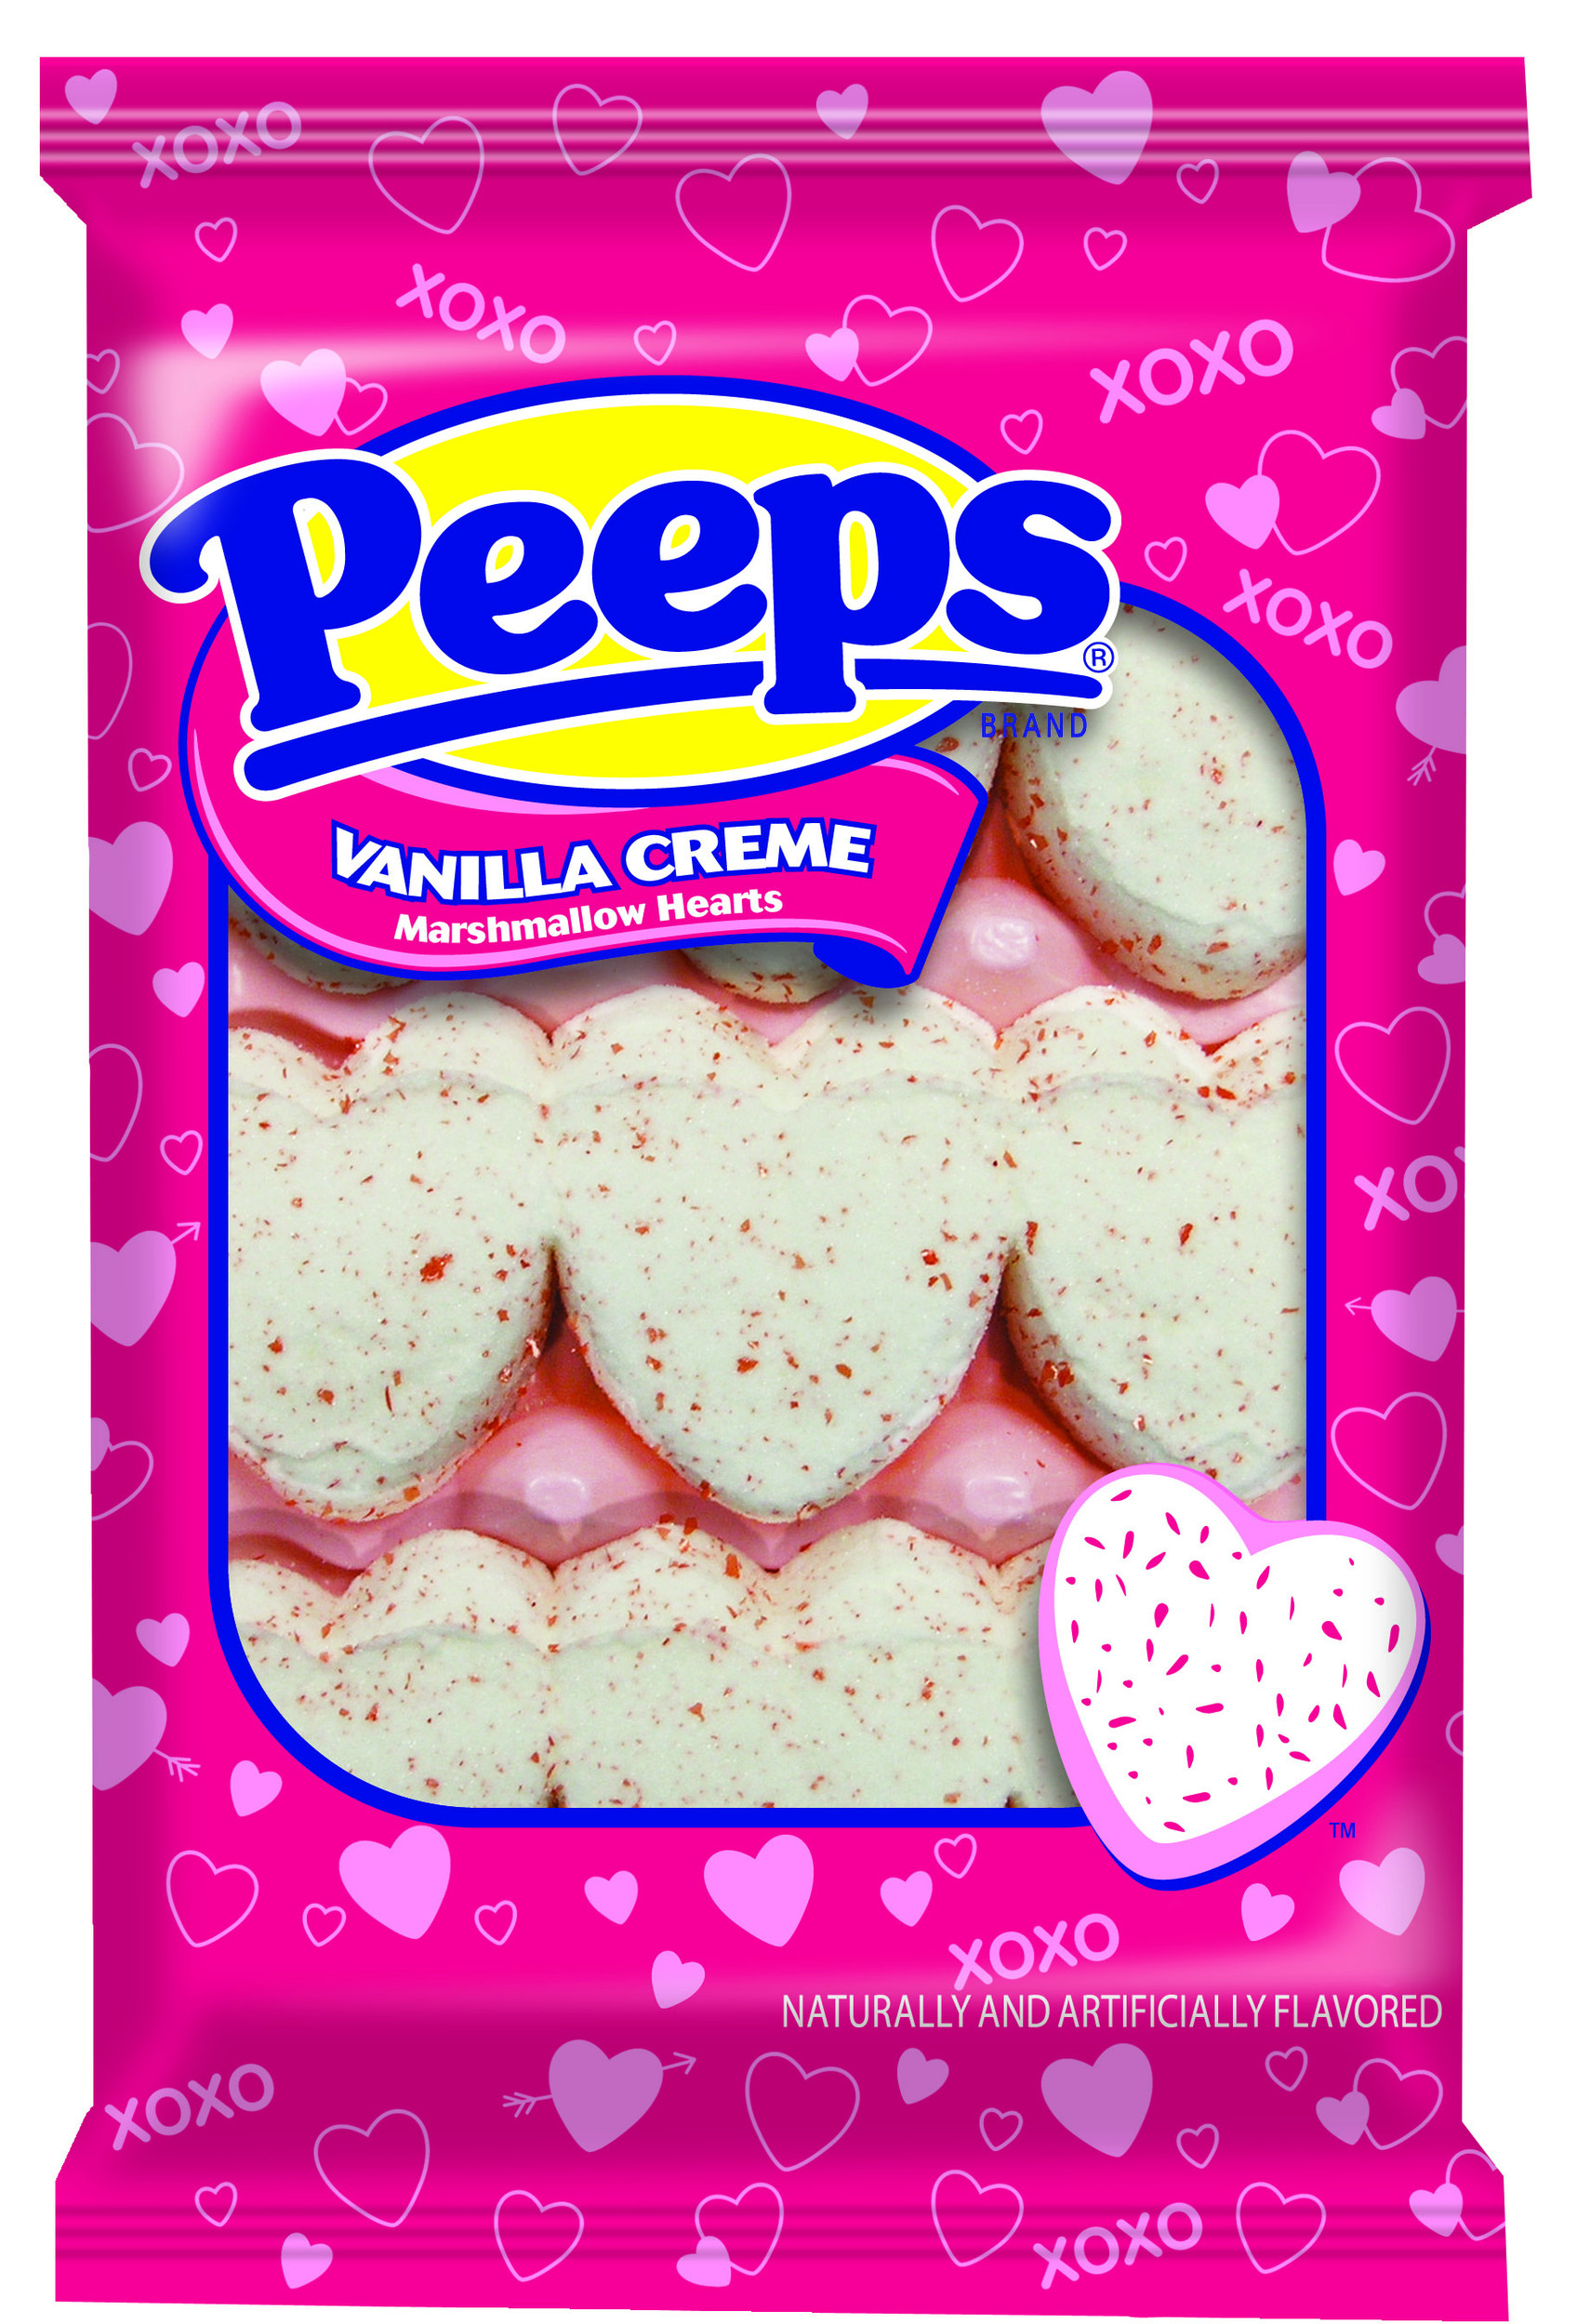 Peeps Vanilla Creme Marshmallow Hearts may be all it takes to please your loved one.